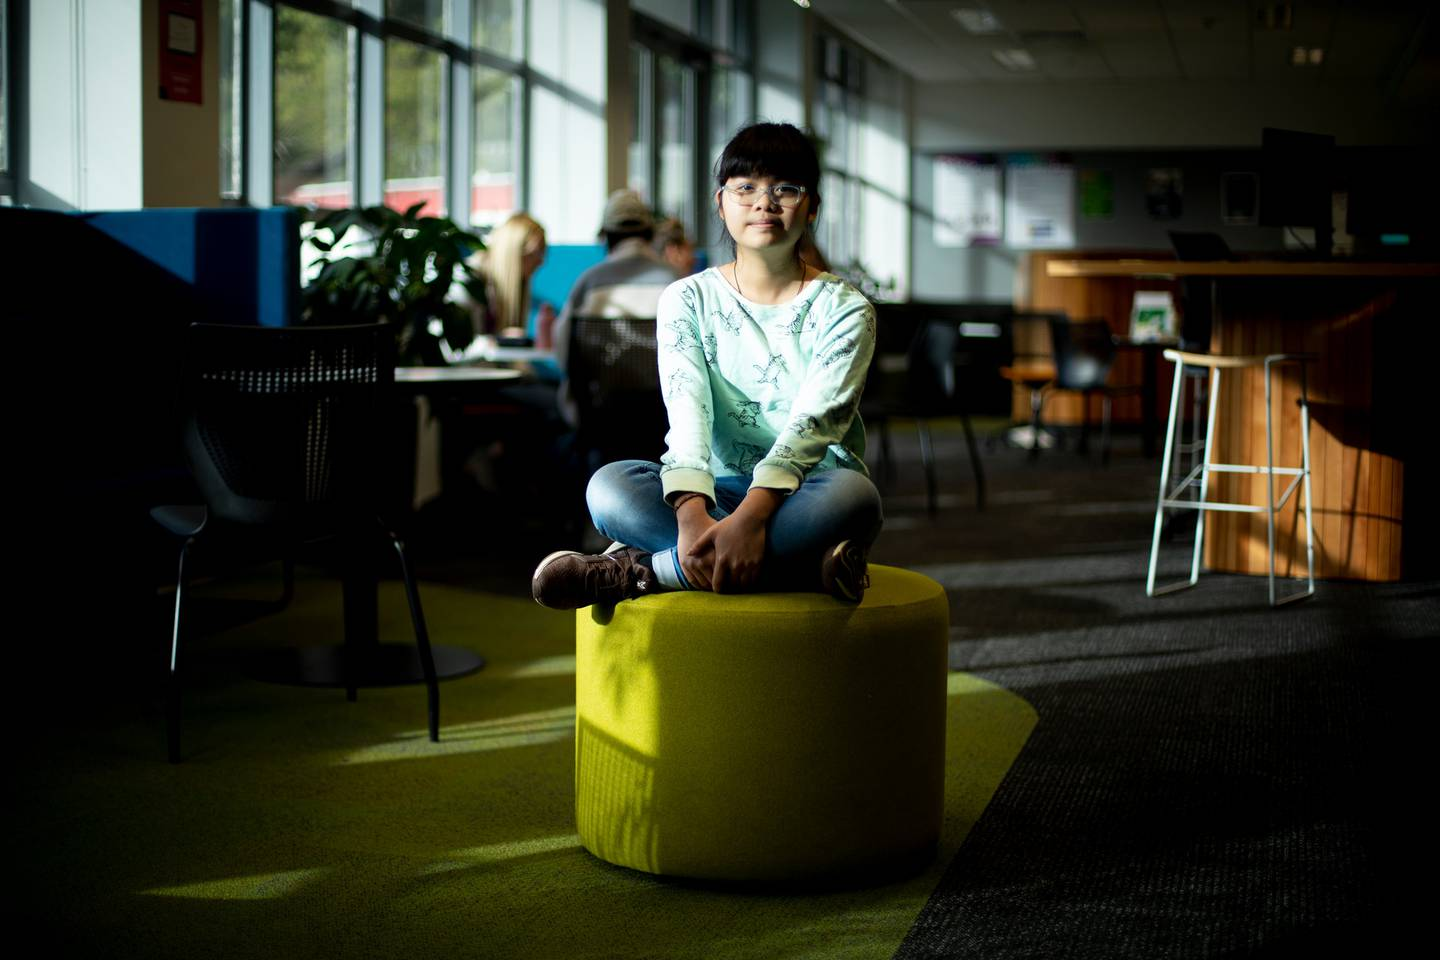 Vicky Ngo Ngoc who was 13 when she entered AUT is pursuing a double degree in finance and applied mathematics. Photo / Dean Purcell